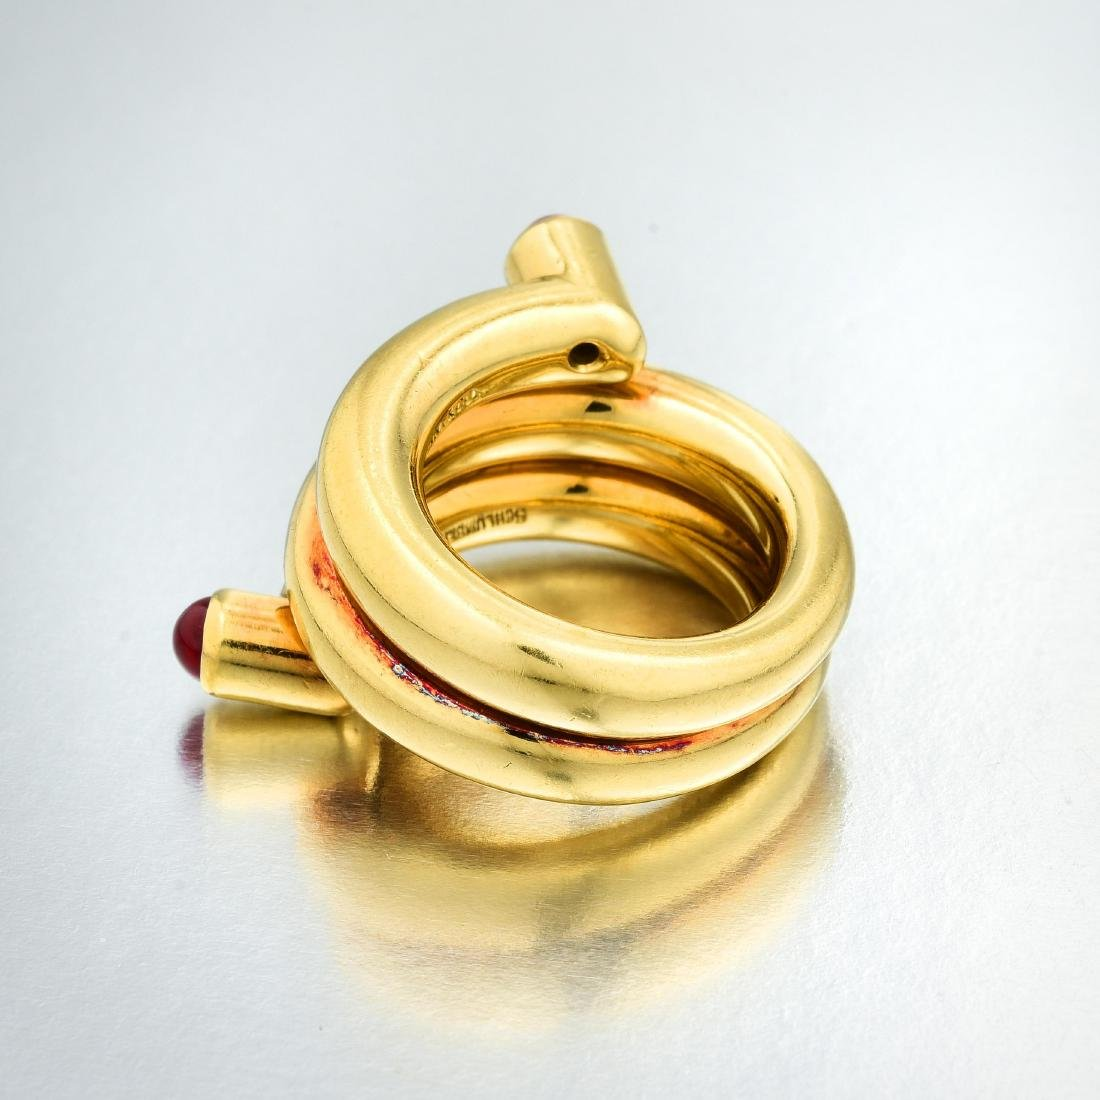 Tiffany & Co. Schlumberger Ruby Double Coil Ring - 3